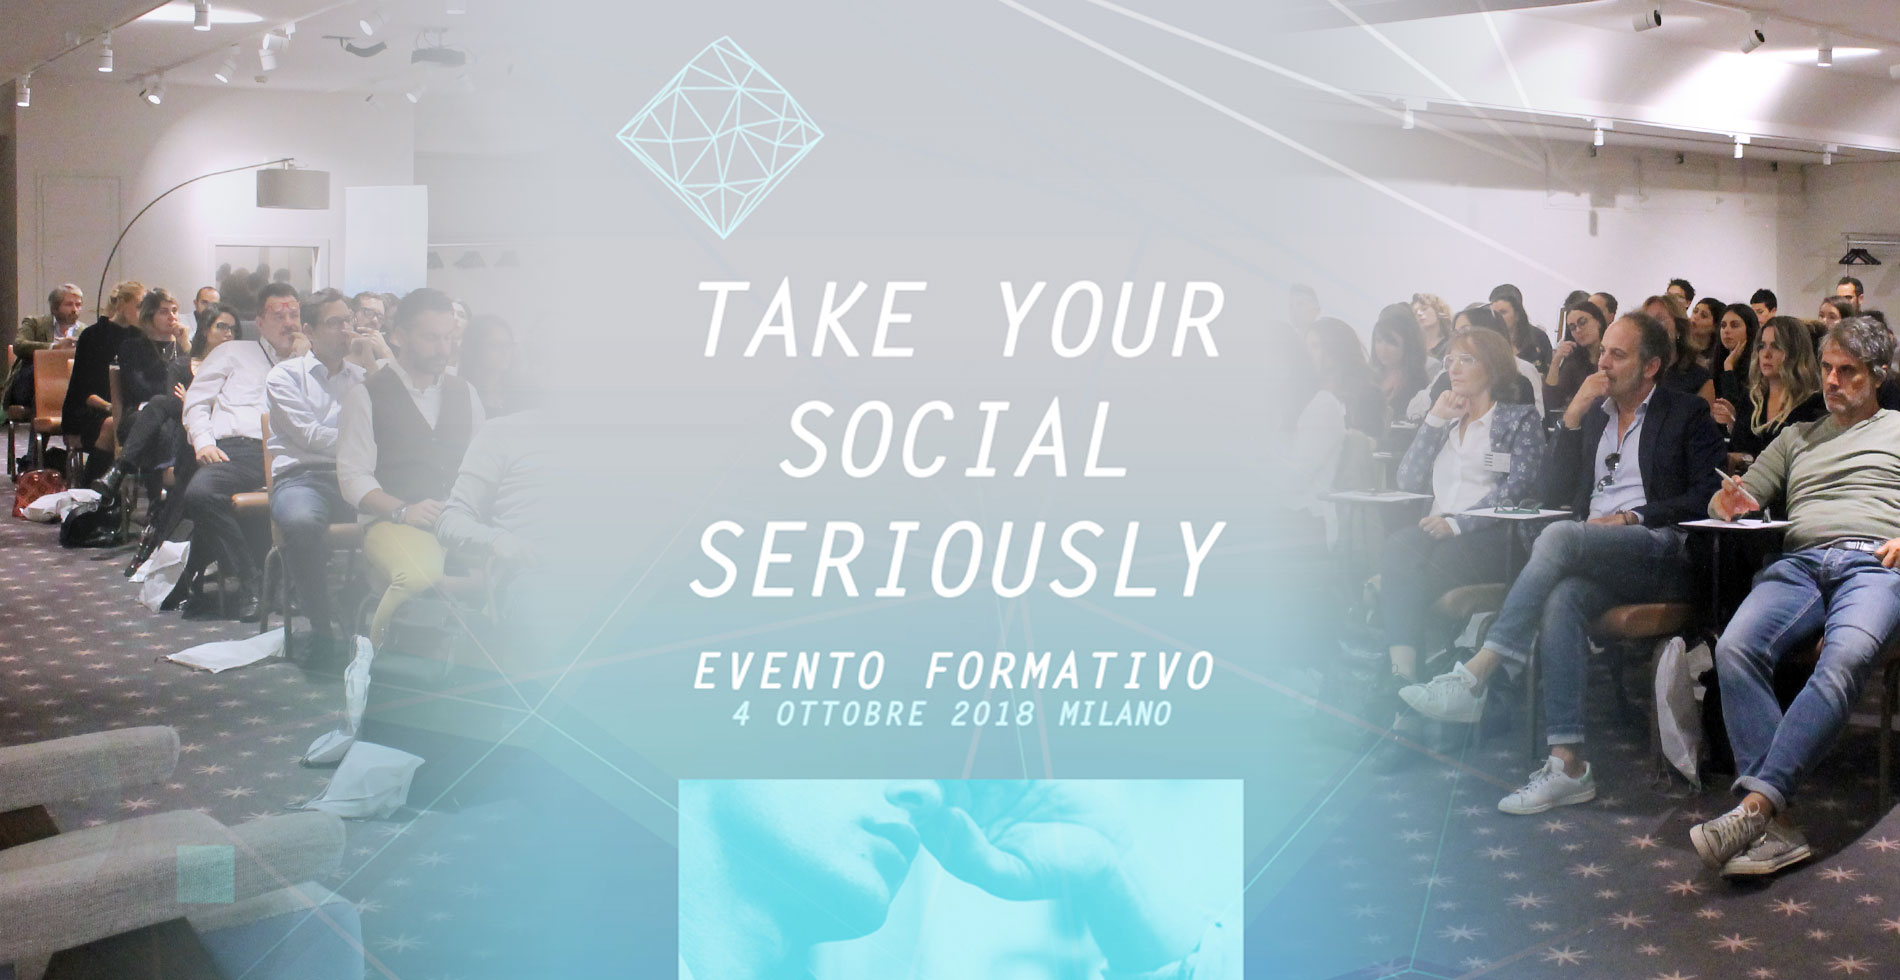 take your social seriously evento